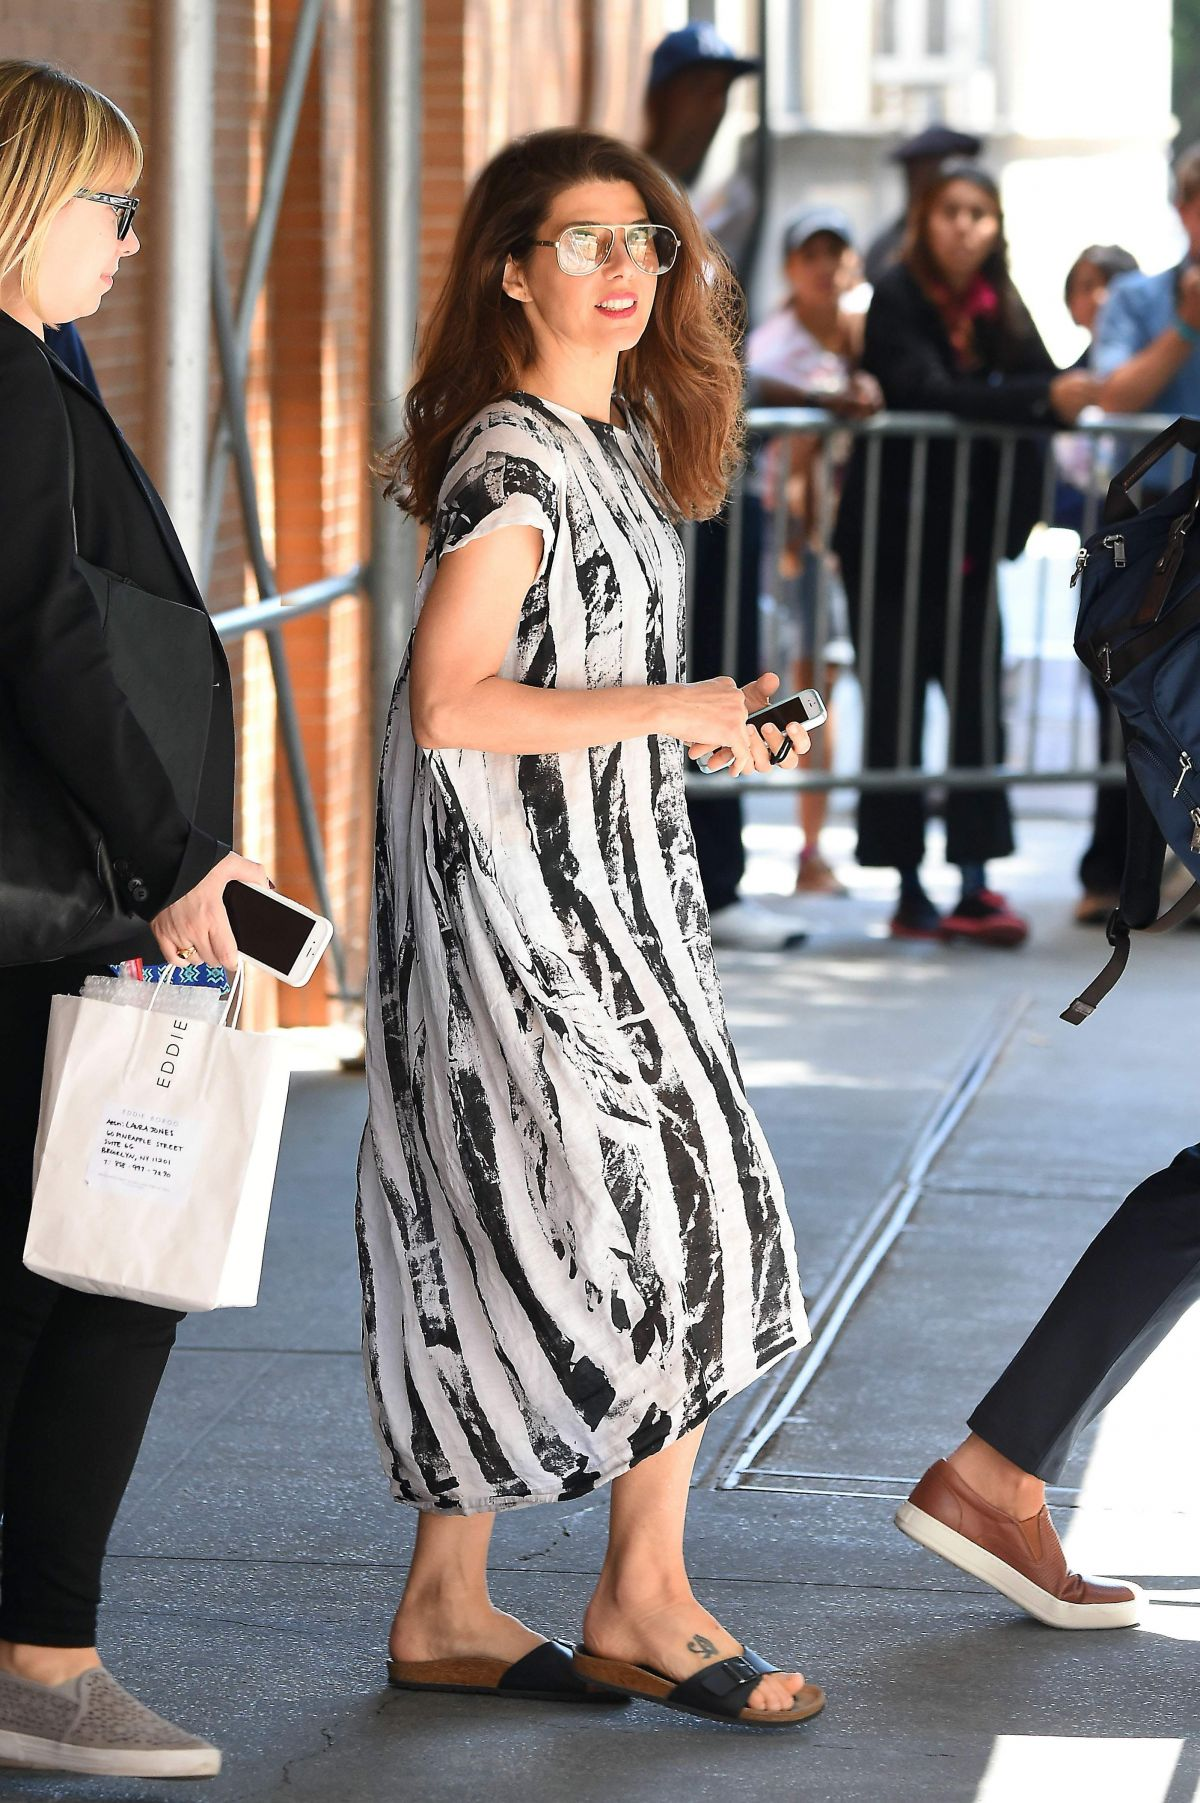 Marisa Tomei Seen Out In Manhattan In A Black And White